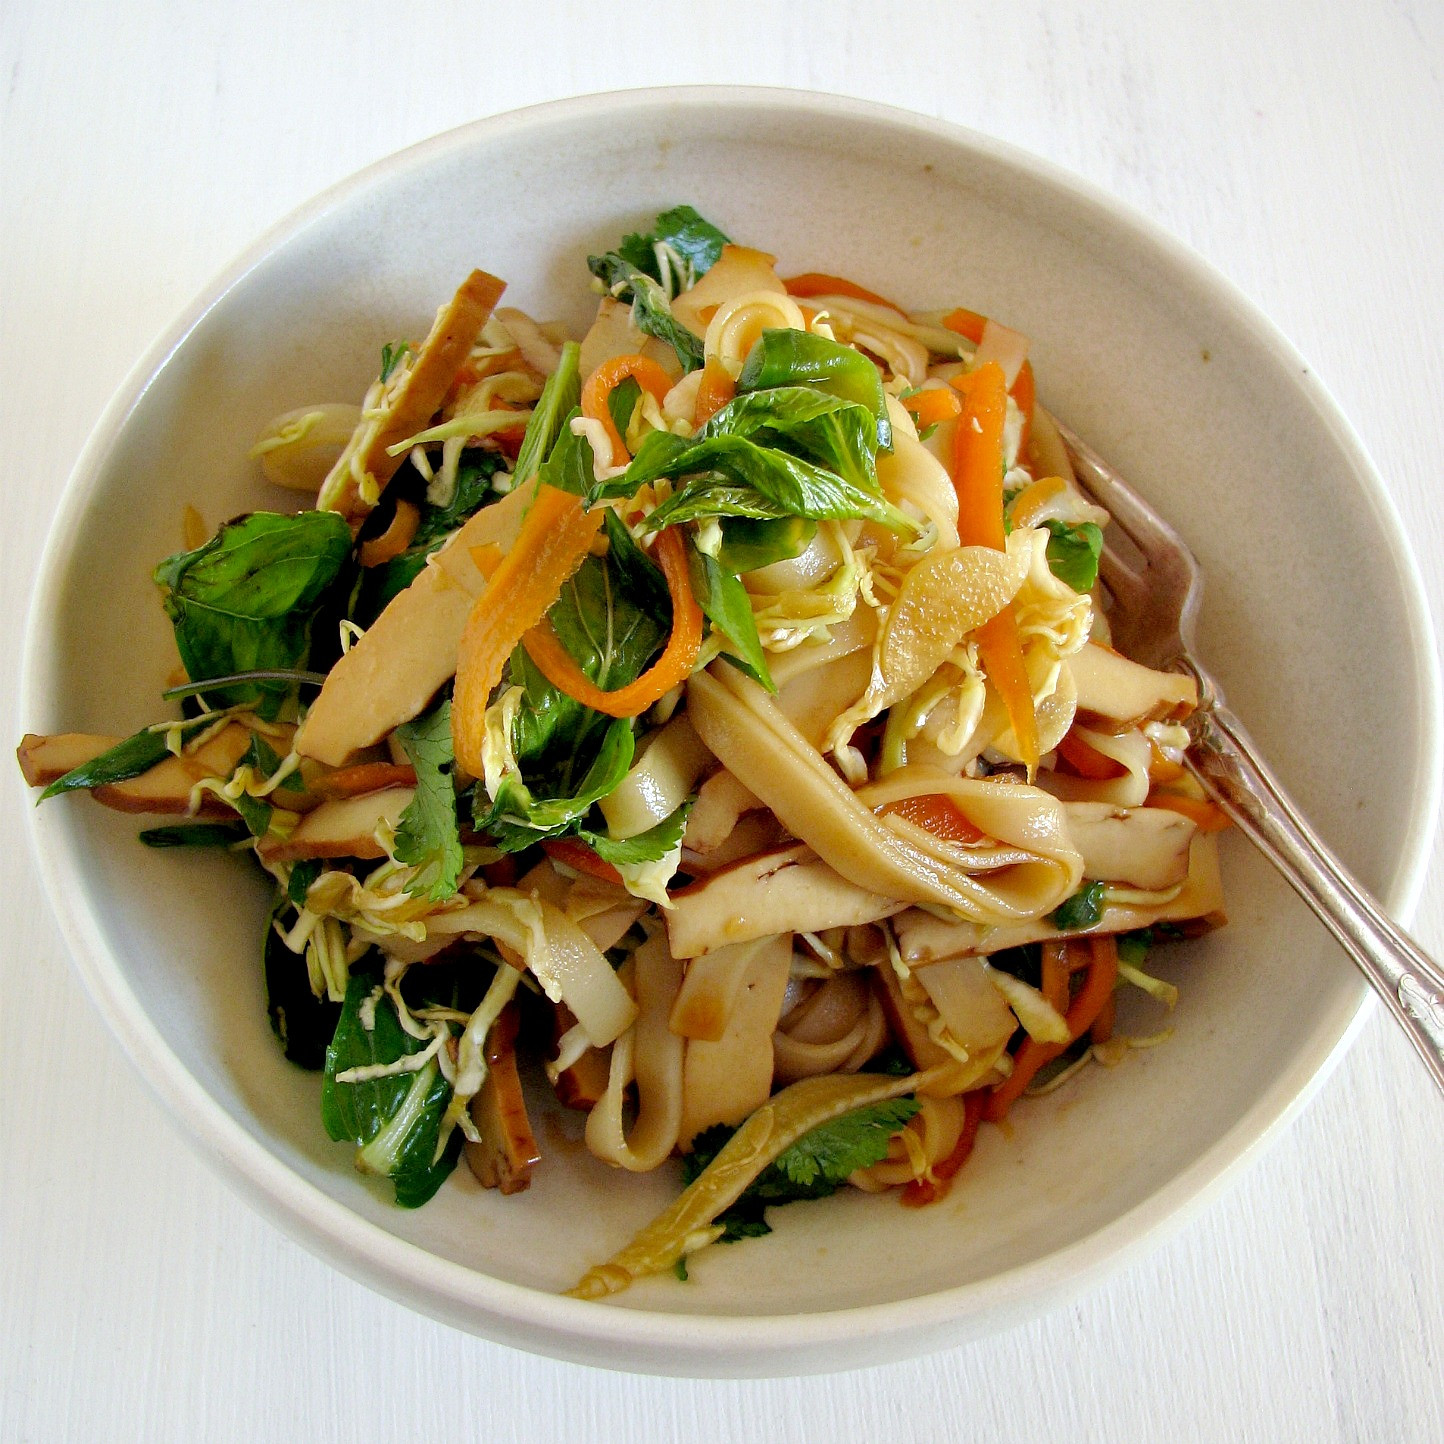 Recipes With Rice Noodles  tofu herb & rice noodle salad recipe – My Darling Lemon Thyme